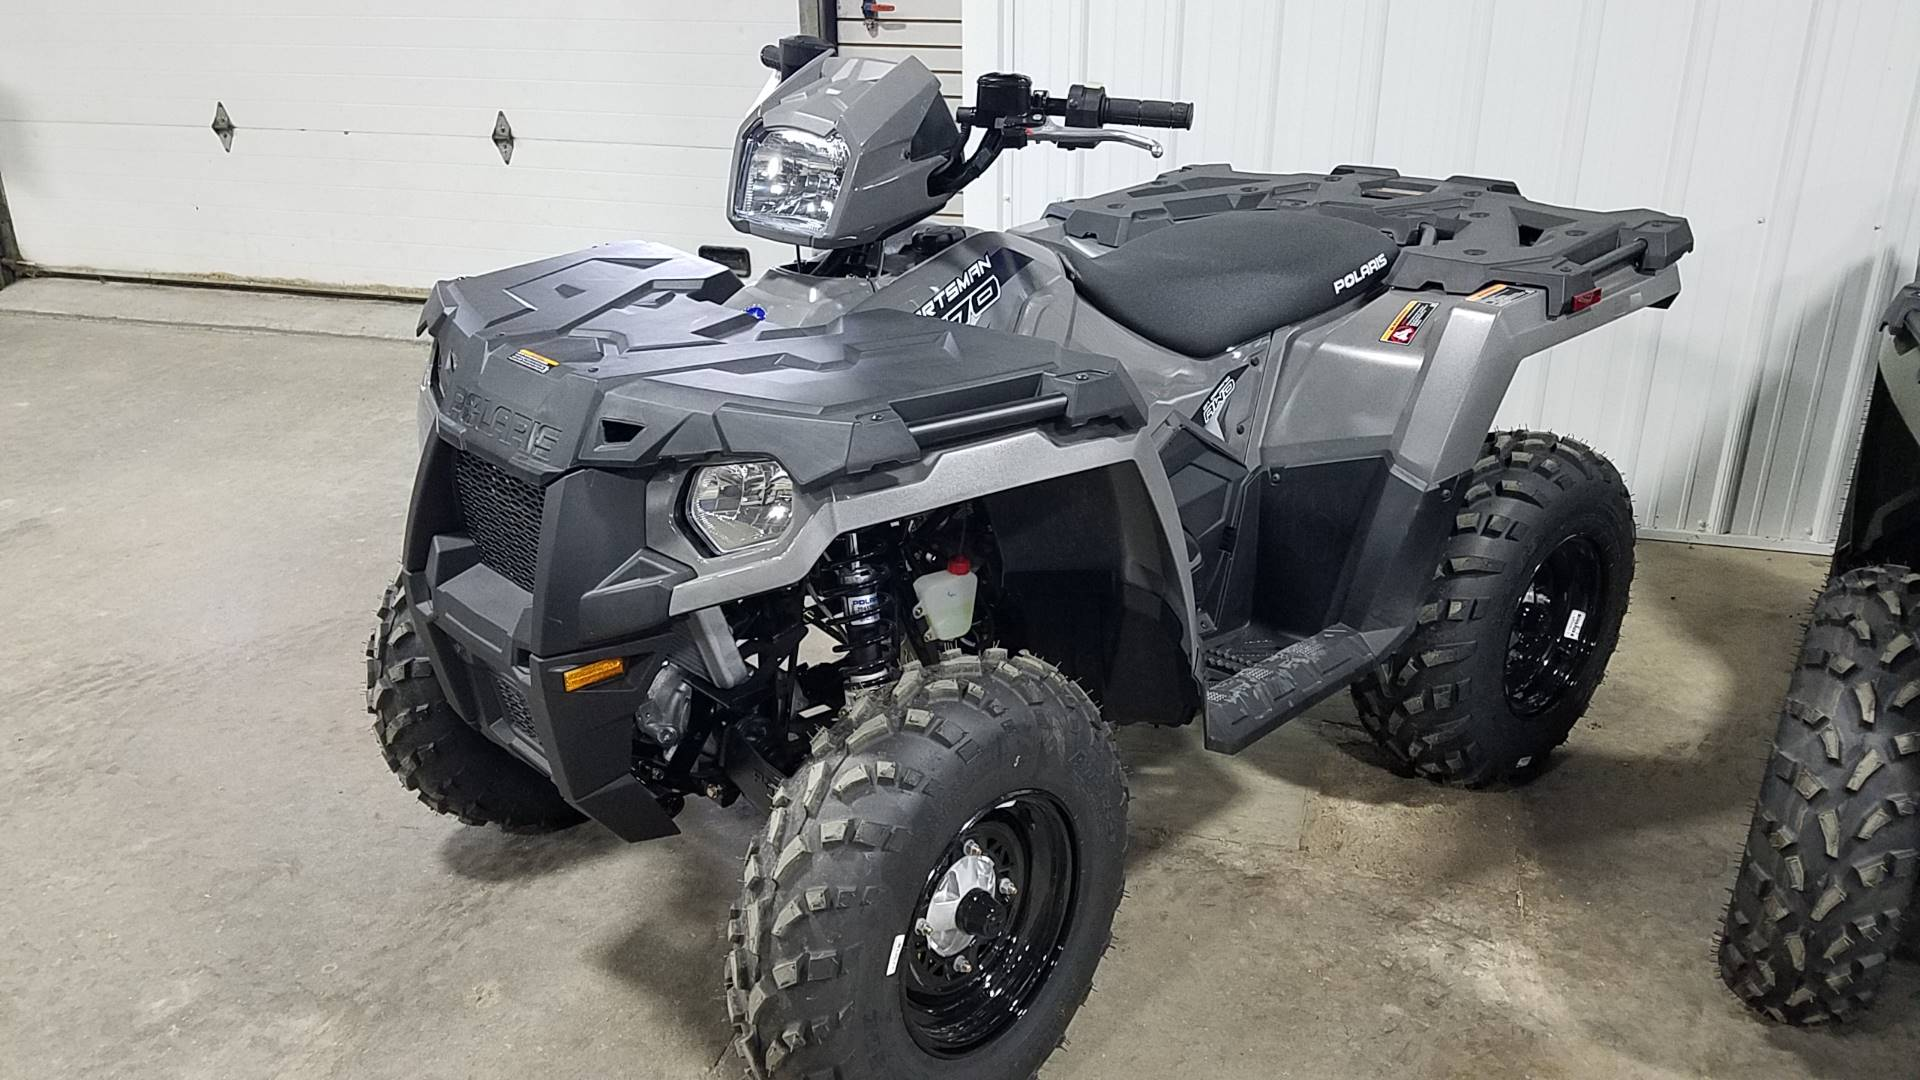 2020 Polaris Sportsman 570 in Devils Lake, North Dakota - Photo 1